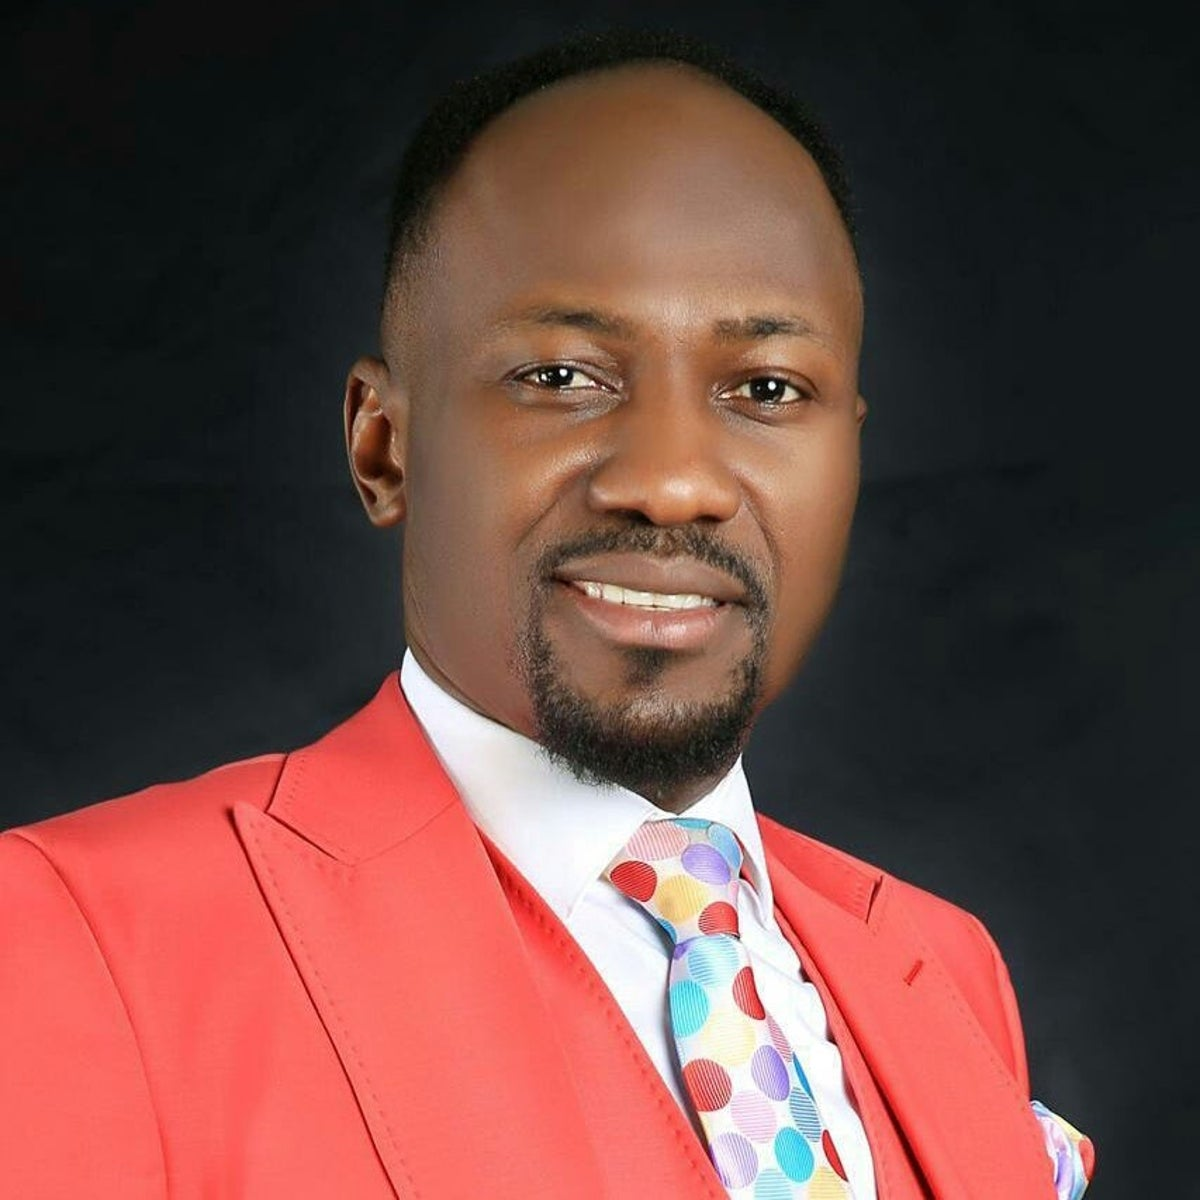 Apostle Suleman laments poor security as Boko Haram kill aid workers